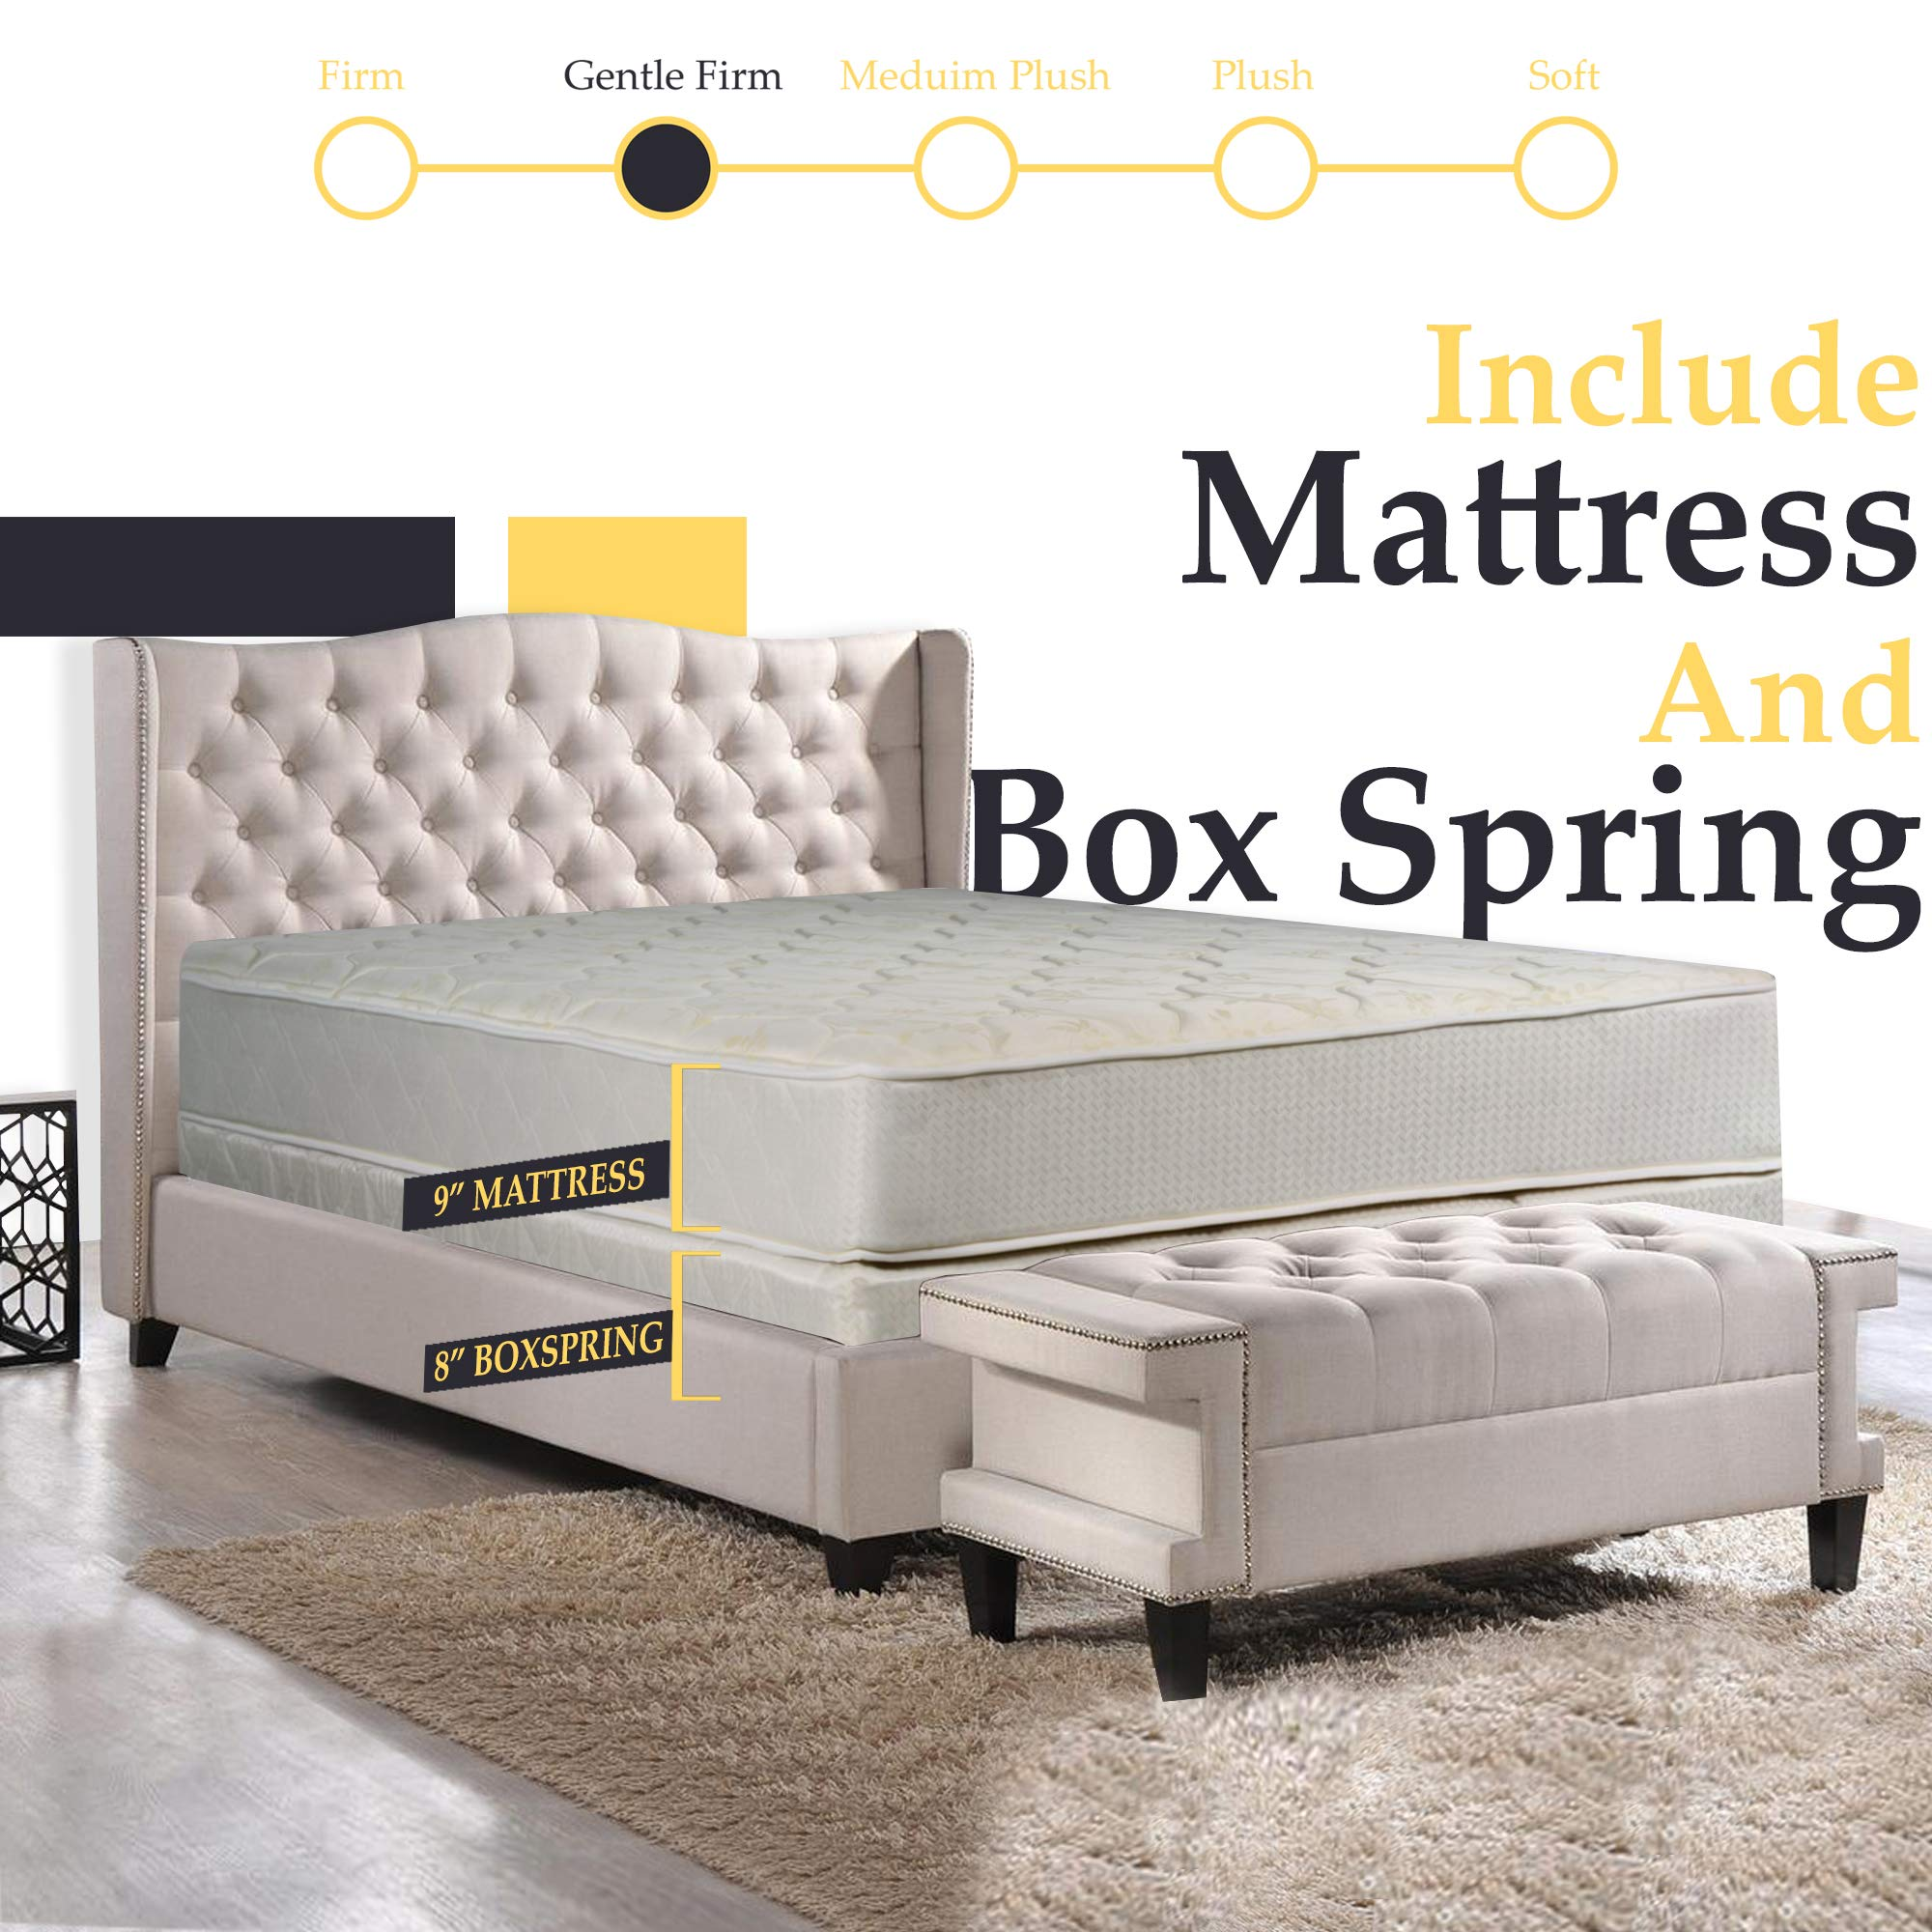 Nutan9-InchGentle FirmTight top Innerspring Mattress And 8-Inch Fully Assembled Wood Boxspring/foundation SetTwin by Nutan